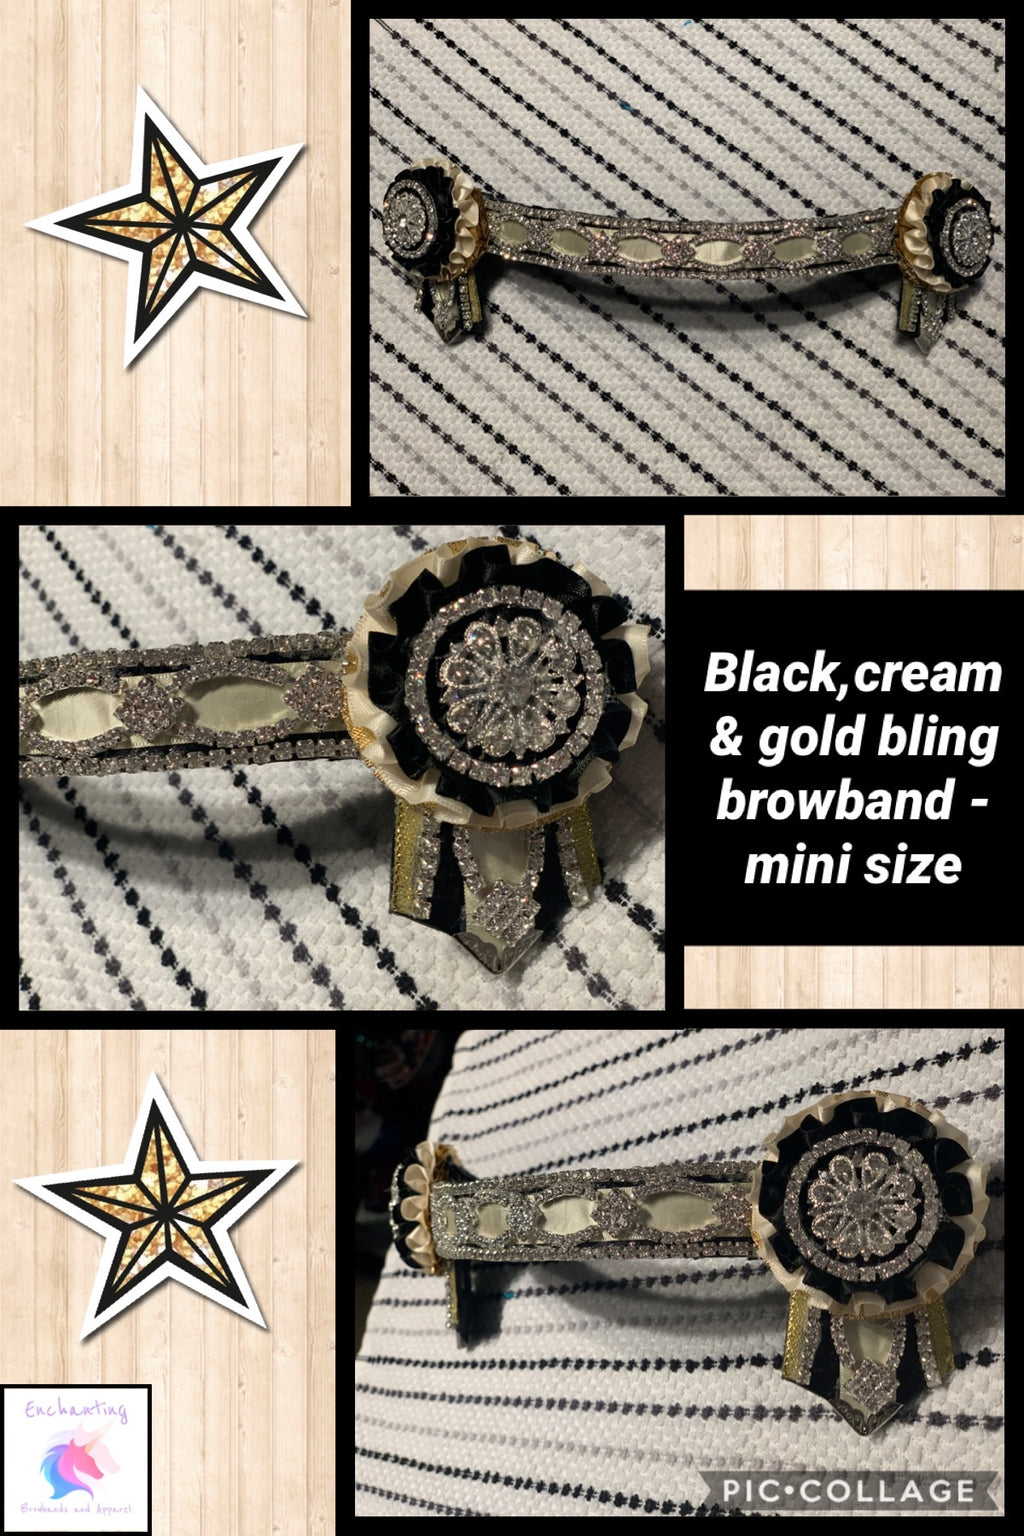 Black, cream & gold bling browband